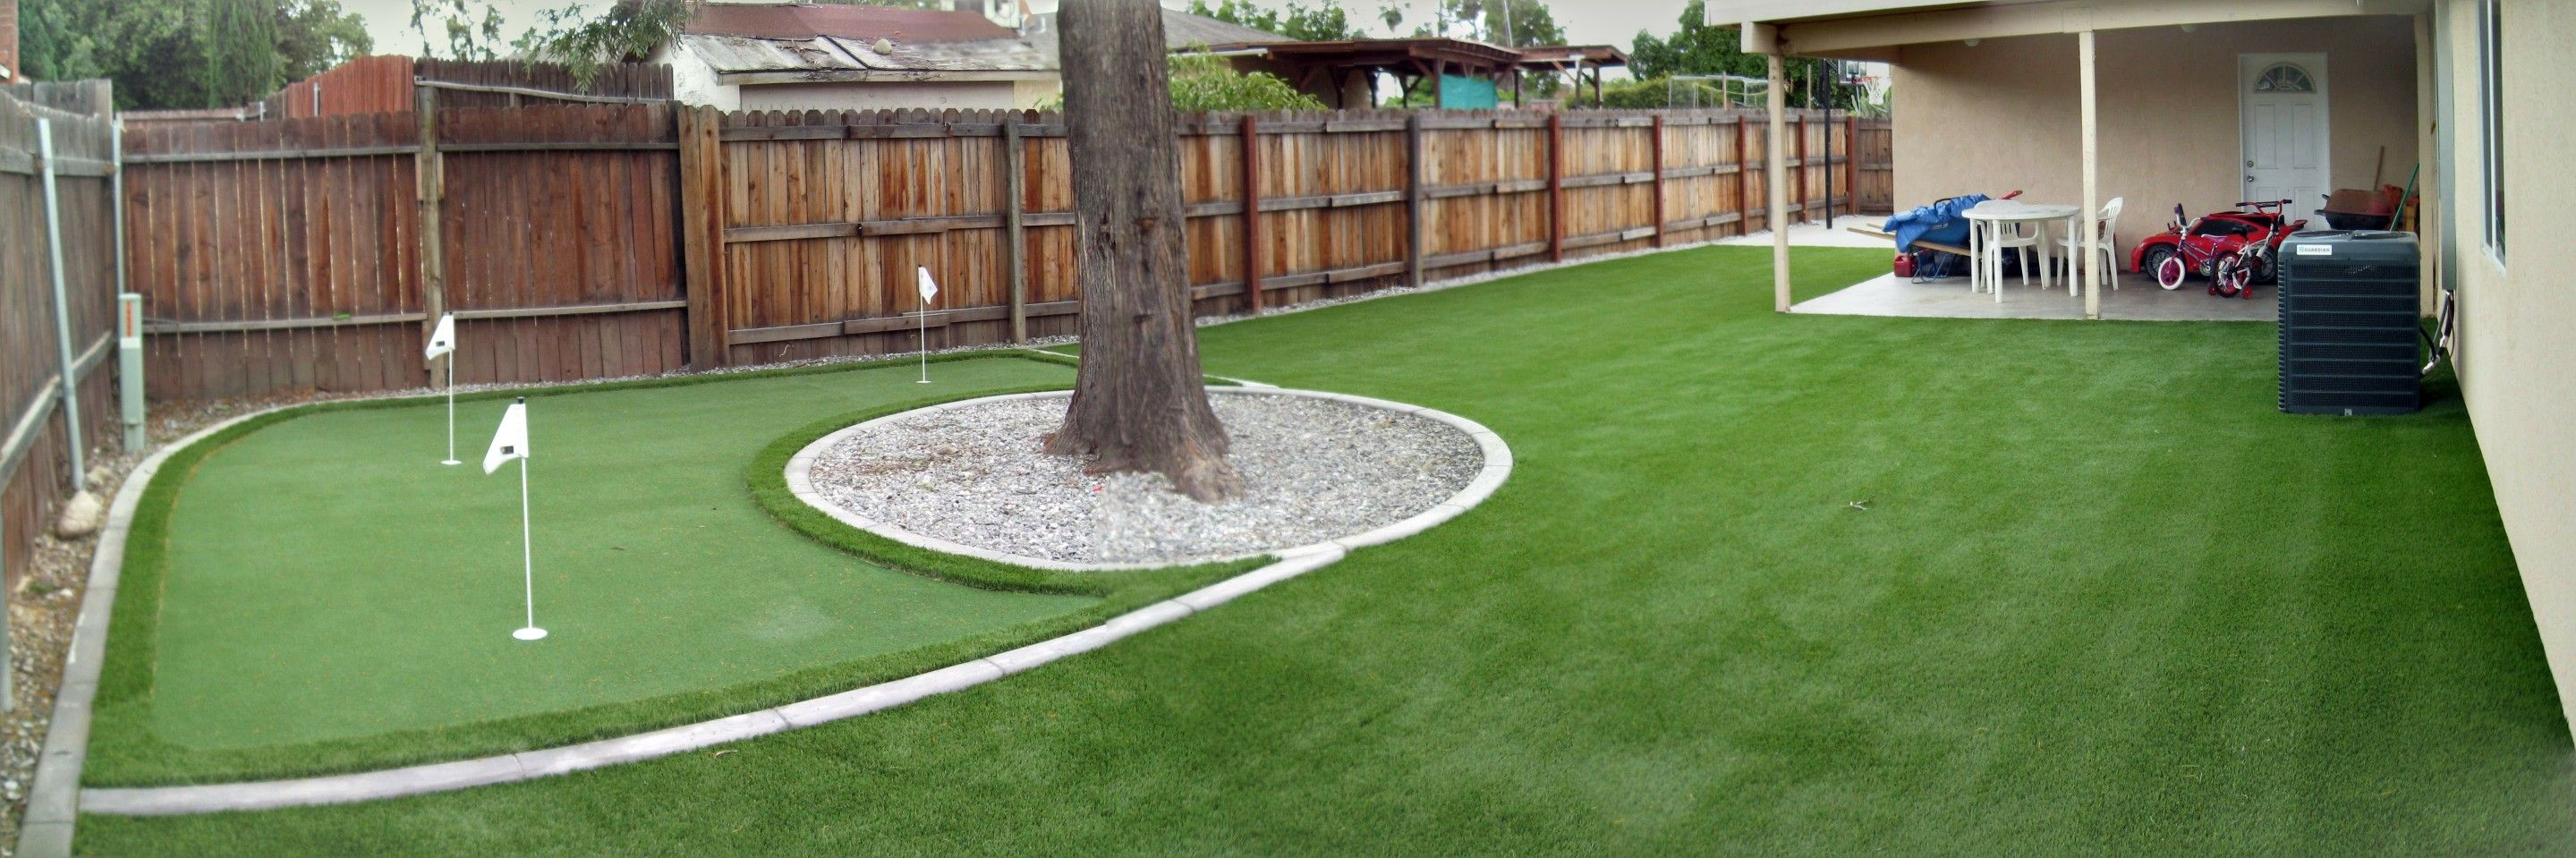 Artificial turf lifestyle designdetails thankful losangeles